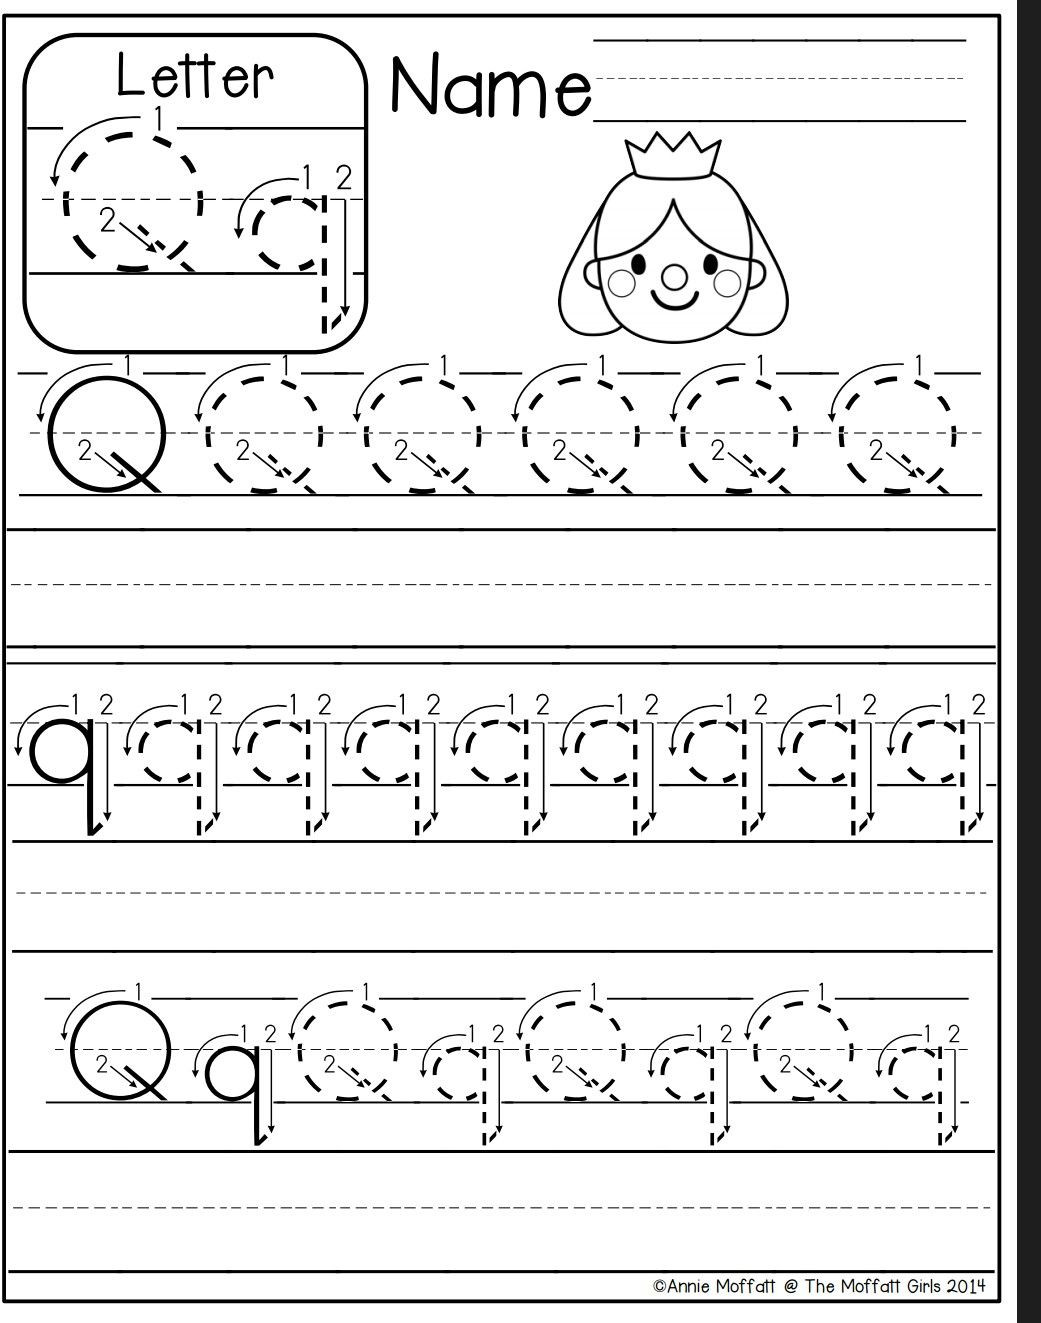 Letter Q Worksheets for Preschool Letter Q Worksheet